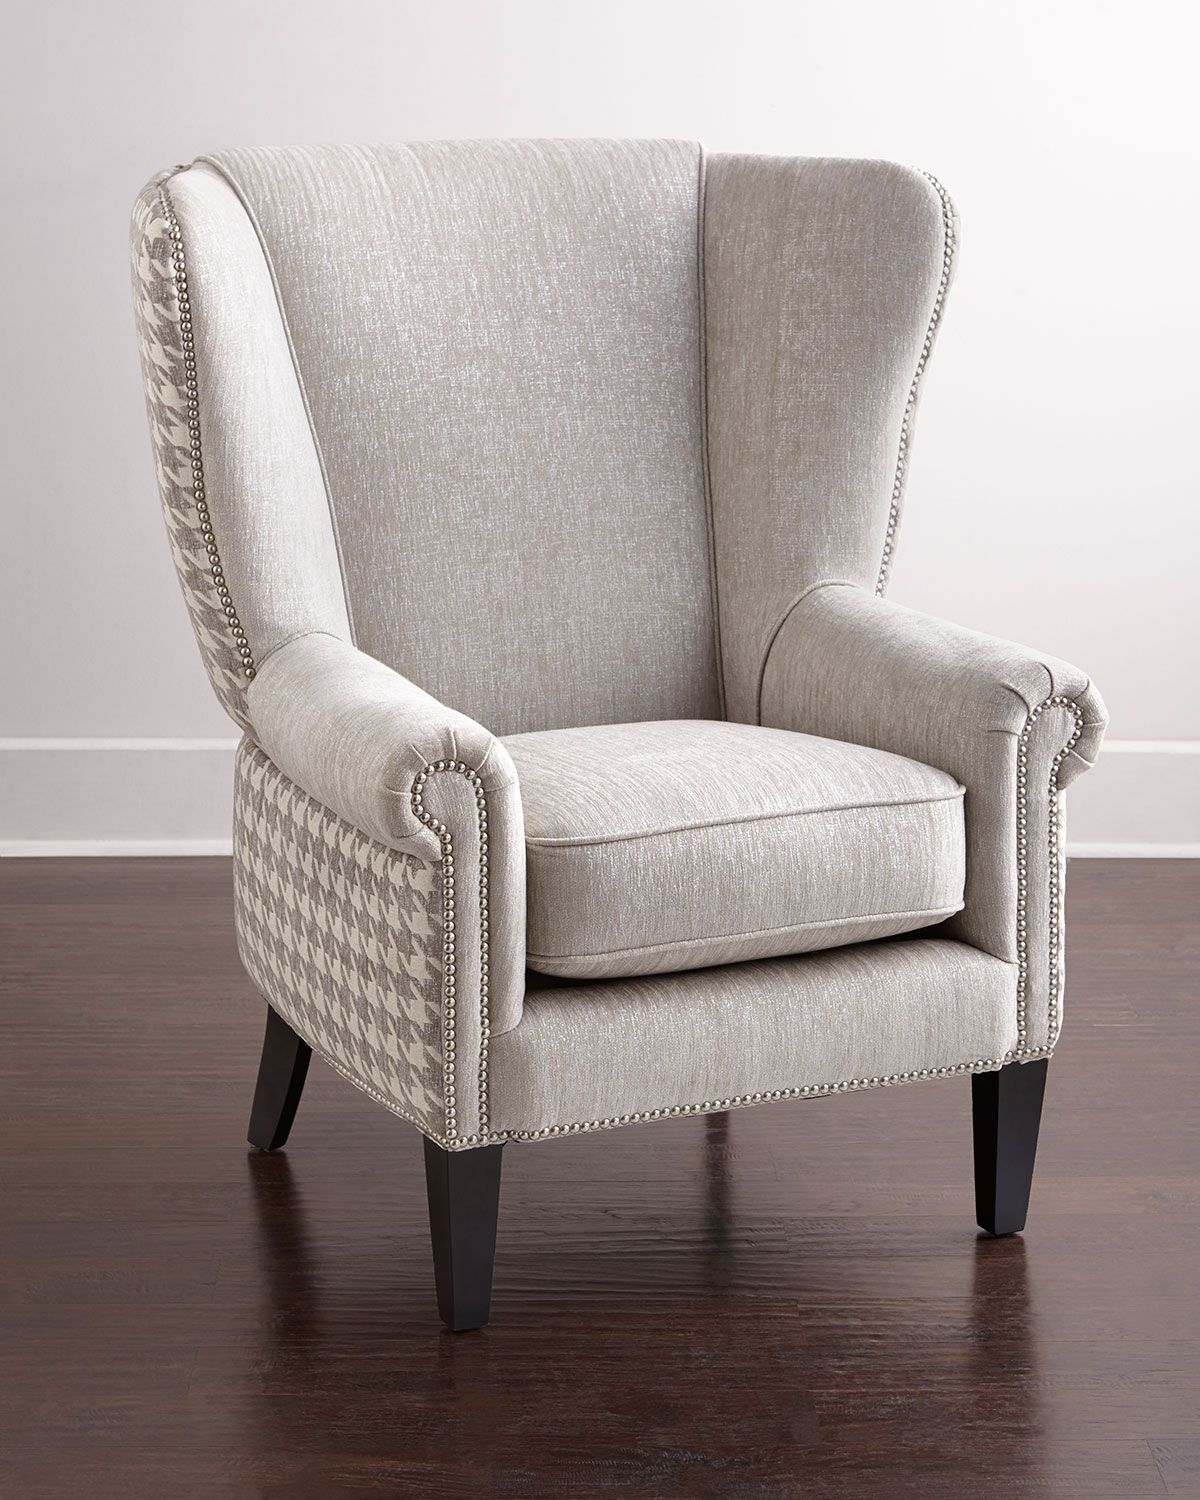 Wing chair has hardwood frame and acrylic polyester upholstery 32 5w x 36d x 45t seat 21w x 22 5d x 24 5t made in the usa of imported mat